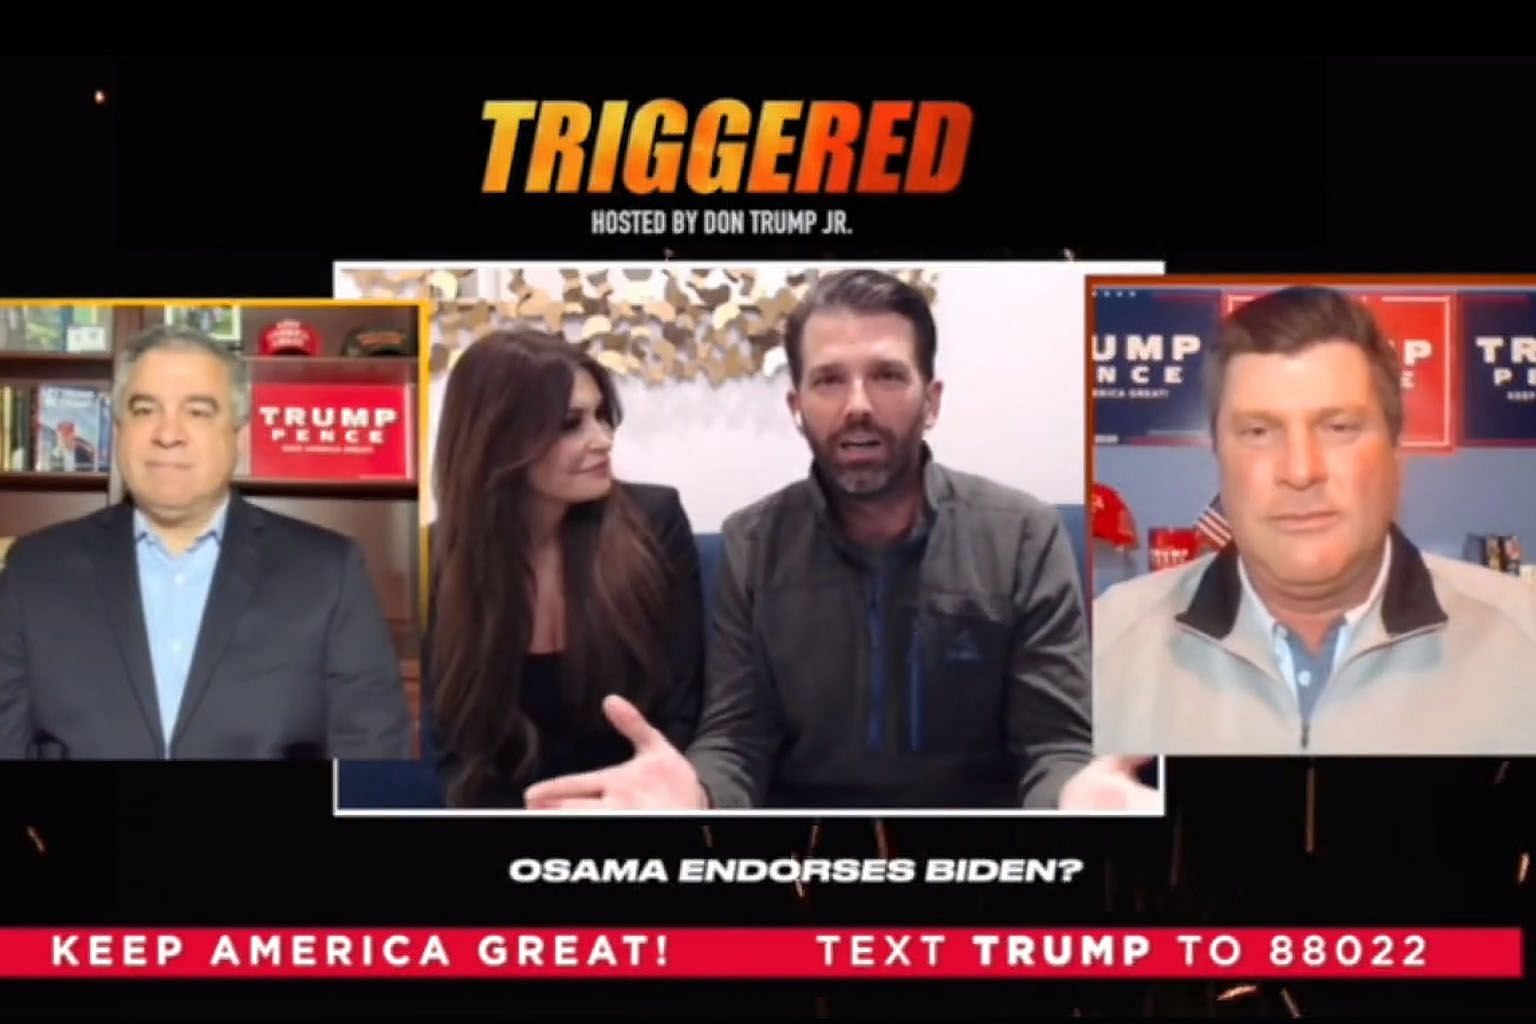 Mr Donald Trump Jr (with his girlfriend, former Fox News presenter Kimberly Guilfoyle) hosting the show Triggered on April 24. The couple, joined by Trump campaign political director Chris Carr (far right) and campaign manager David Bossie via video,